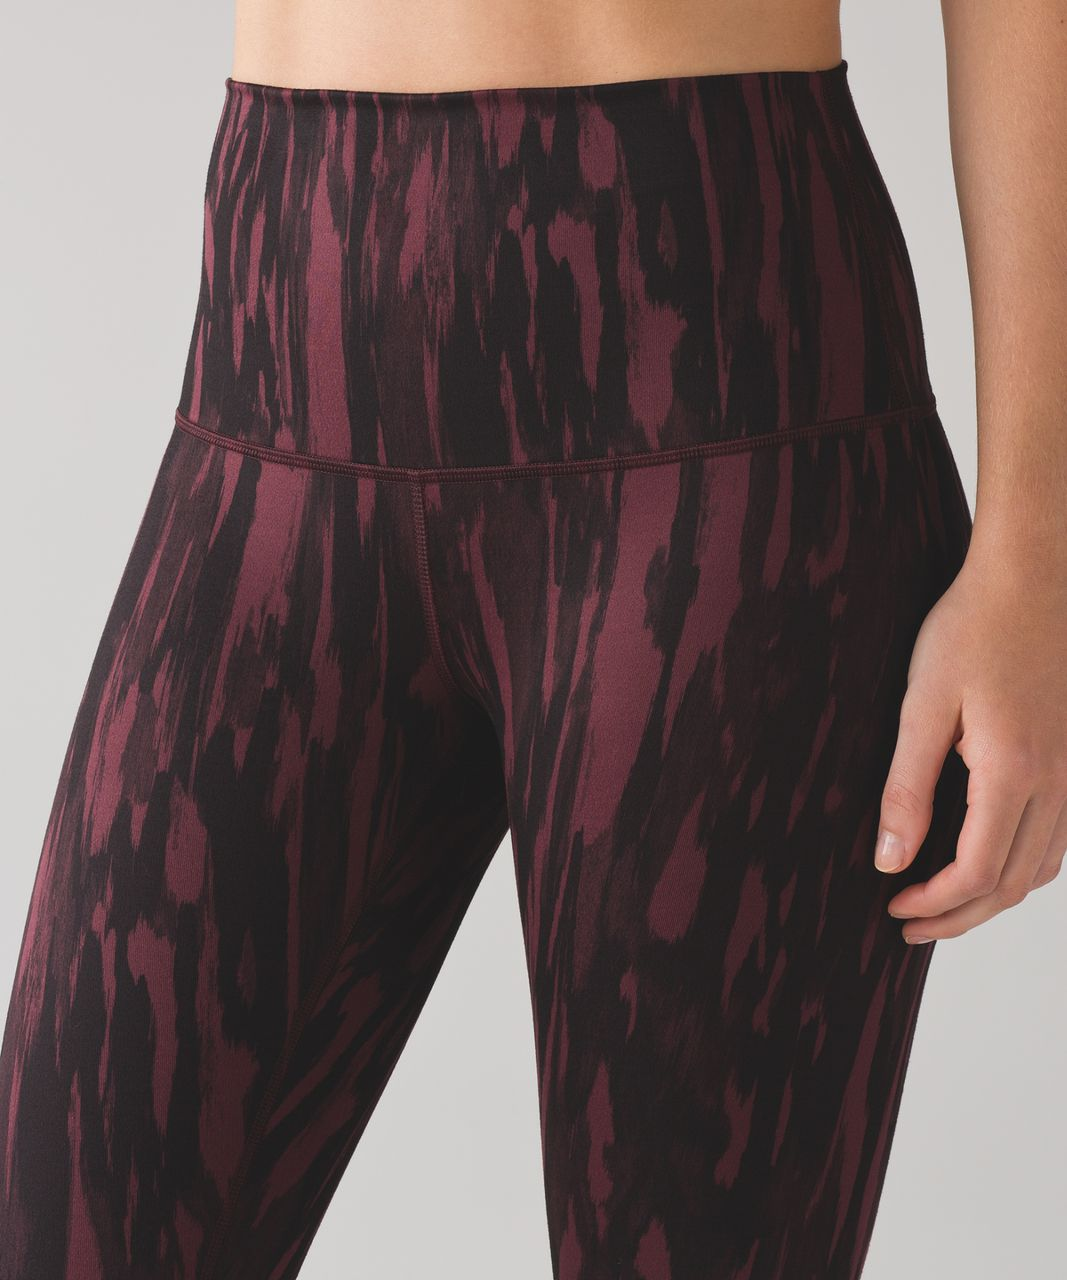 Lululemon Wunder Under Pant (Hi-Rise) (Full-On Luon) - Painted Animal Bordeaux Drama Black